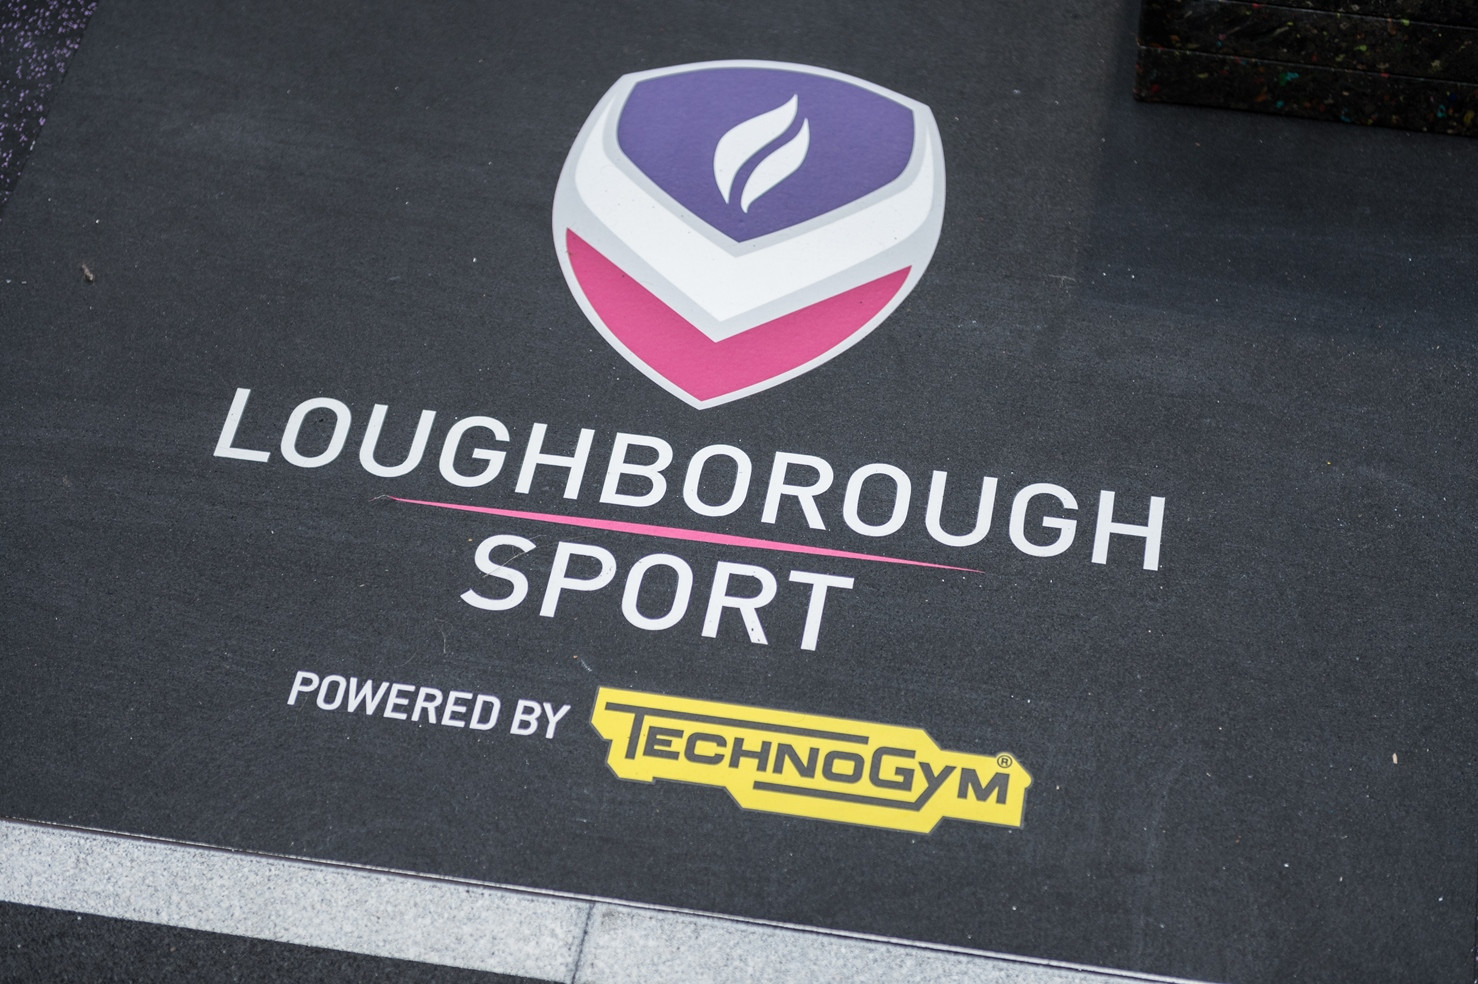 Loughborough University sign deal with Technogym